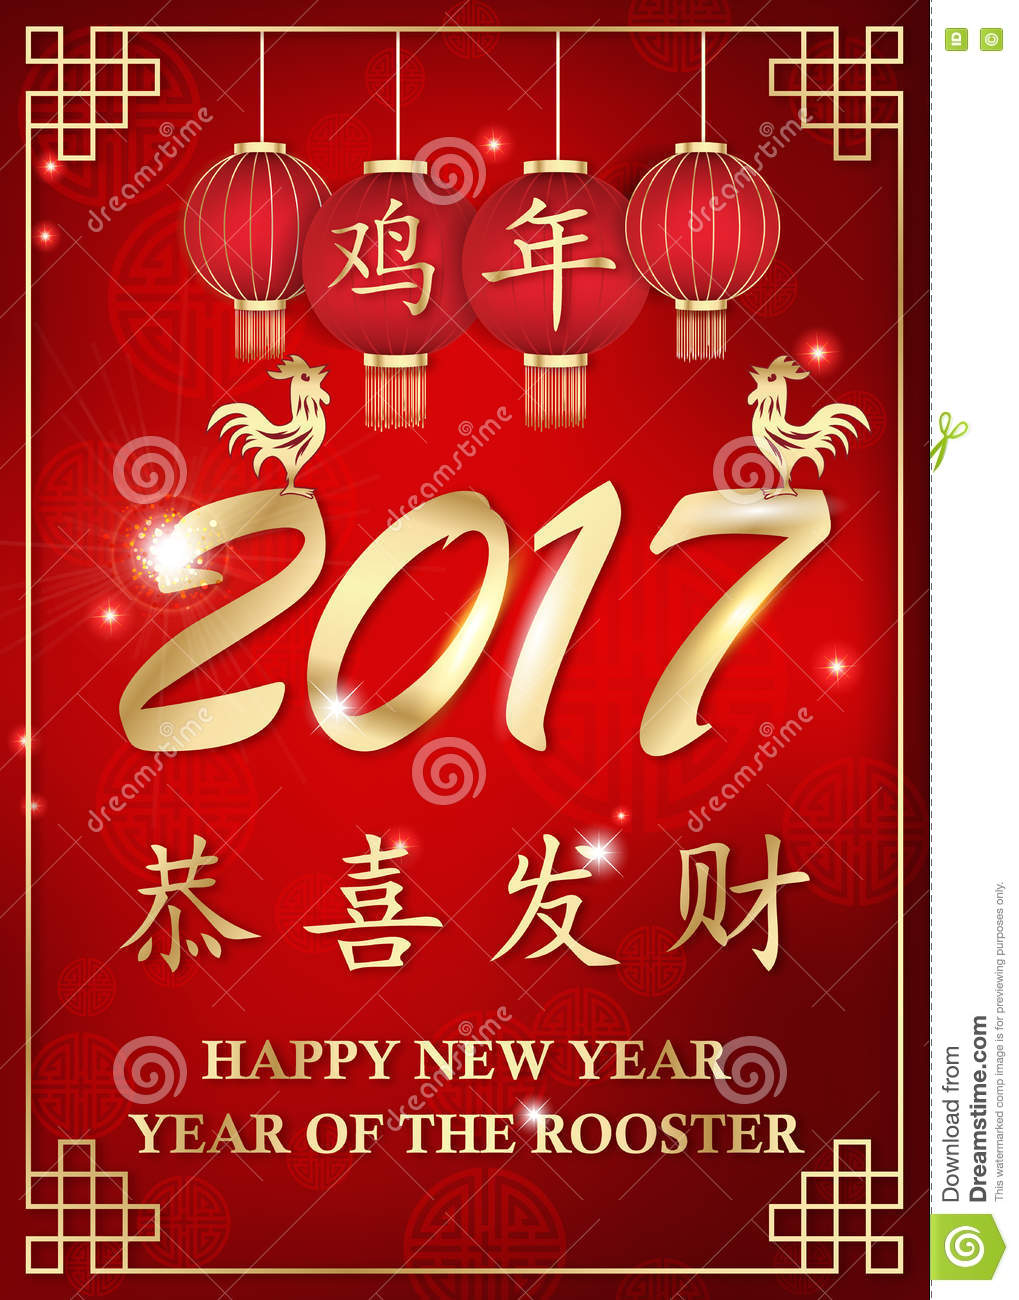 chinese new year of the rooster 2017 greeting card chinese text translation happy new year year of the rooster print colors used custom size of a